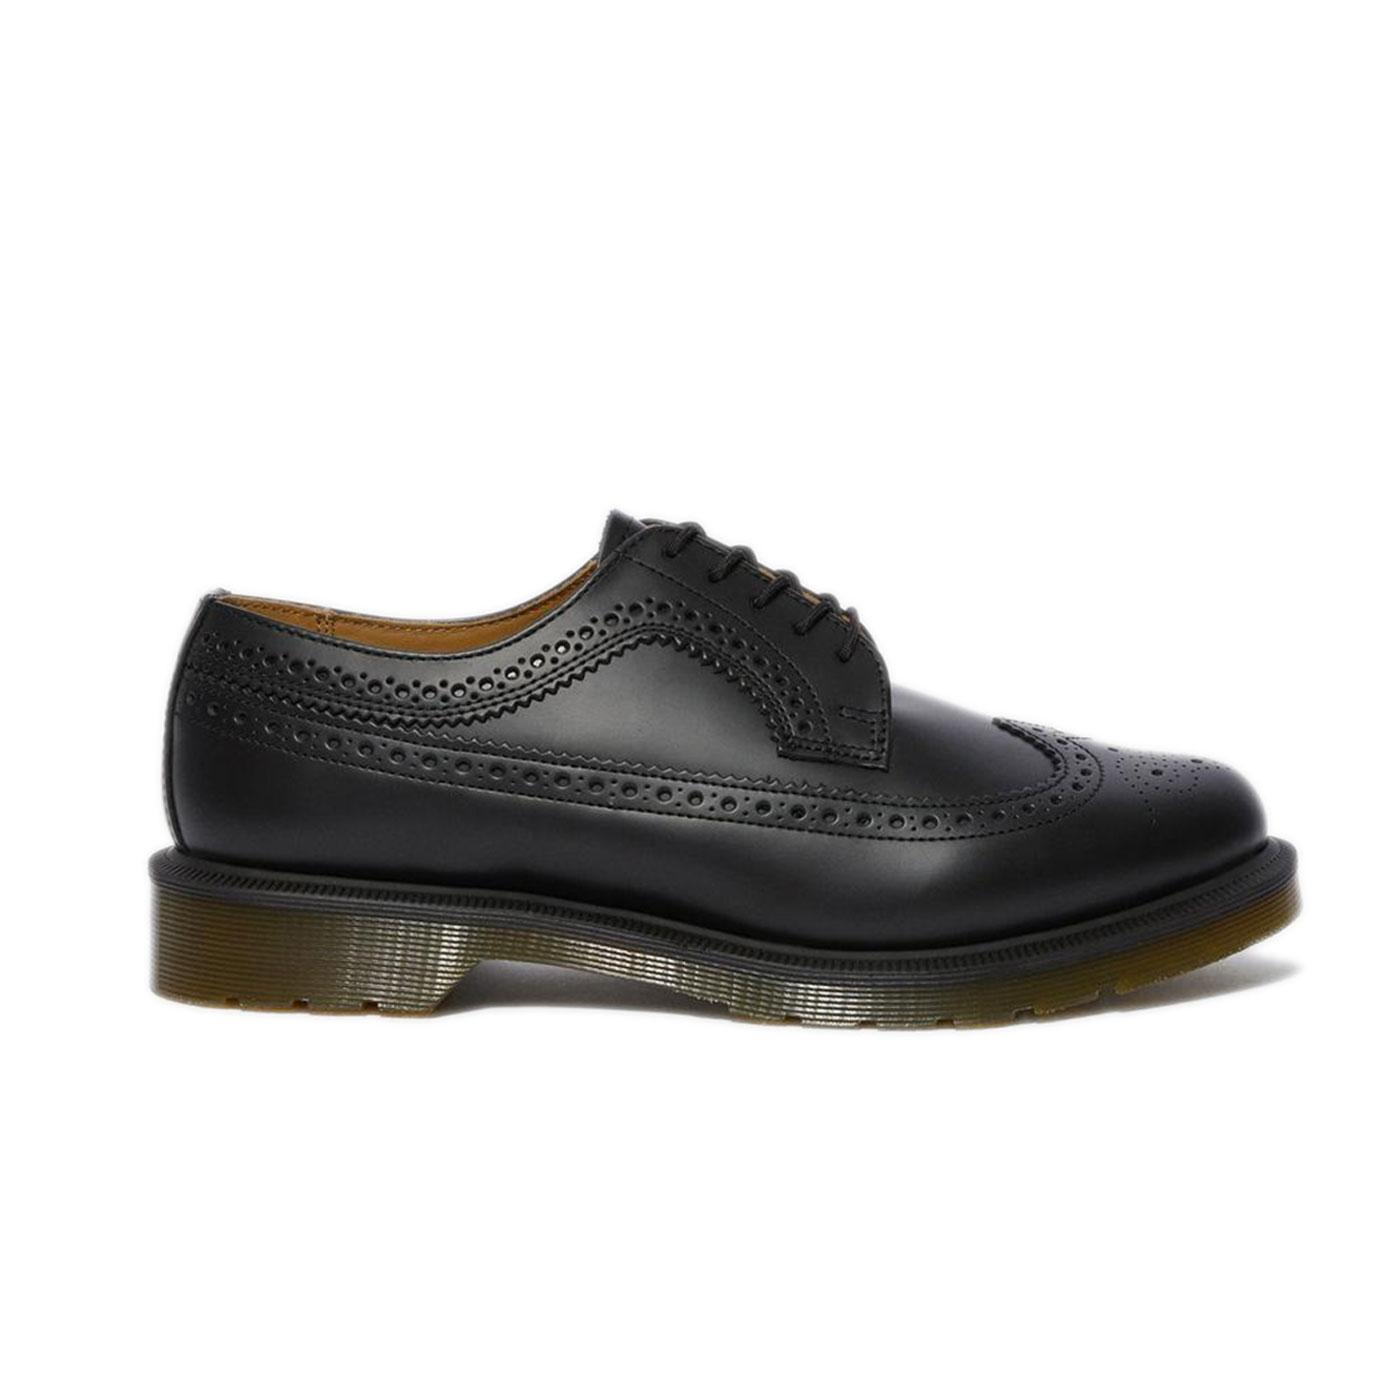 3989 Smooth DR MARTENS Leather Brogue Shoes